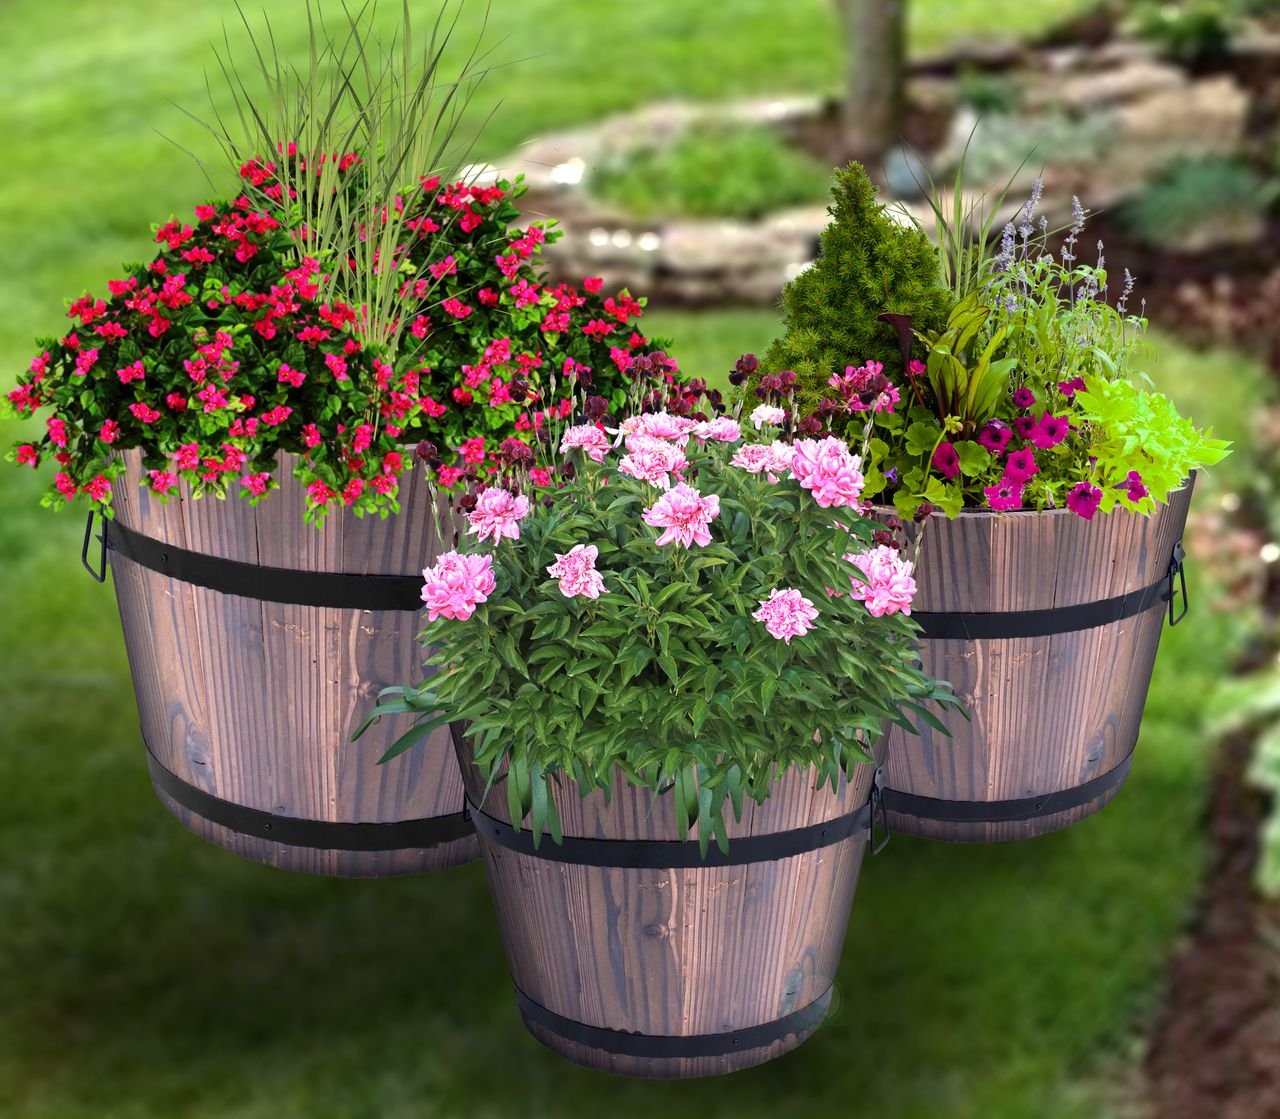 Wooden Whiskey Barrel Planters (With images) Whiskey